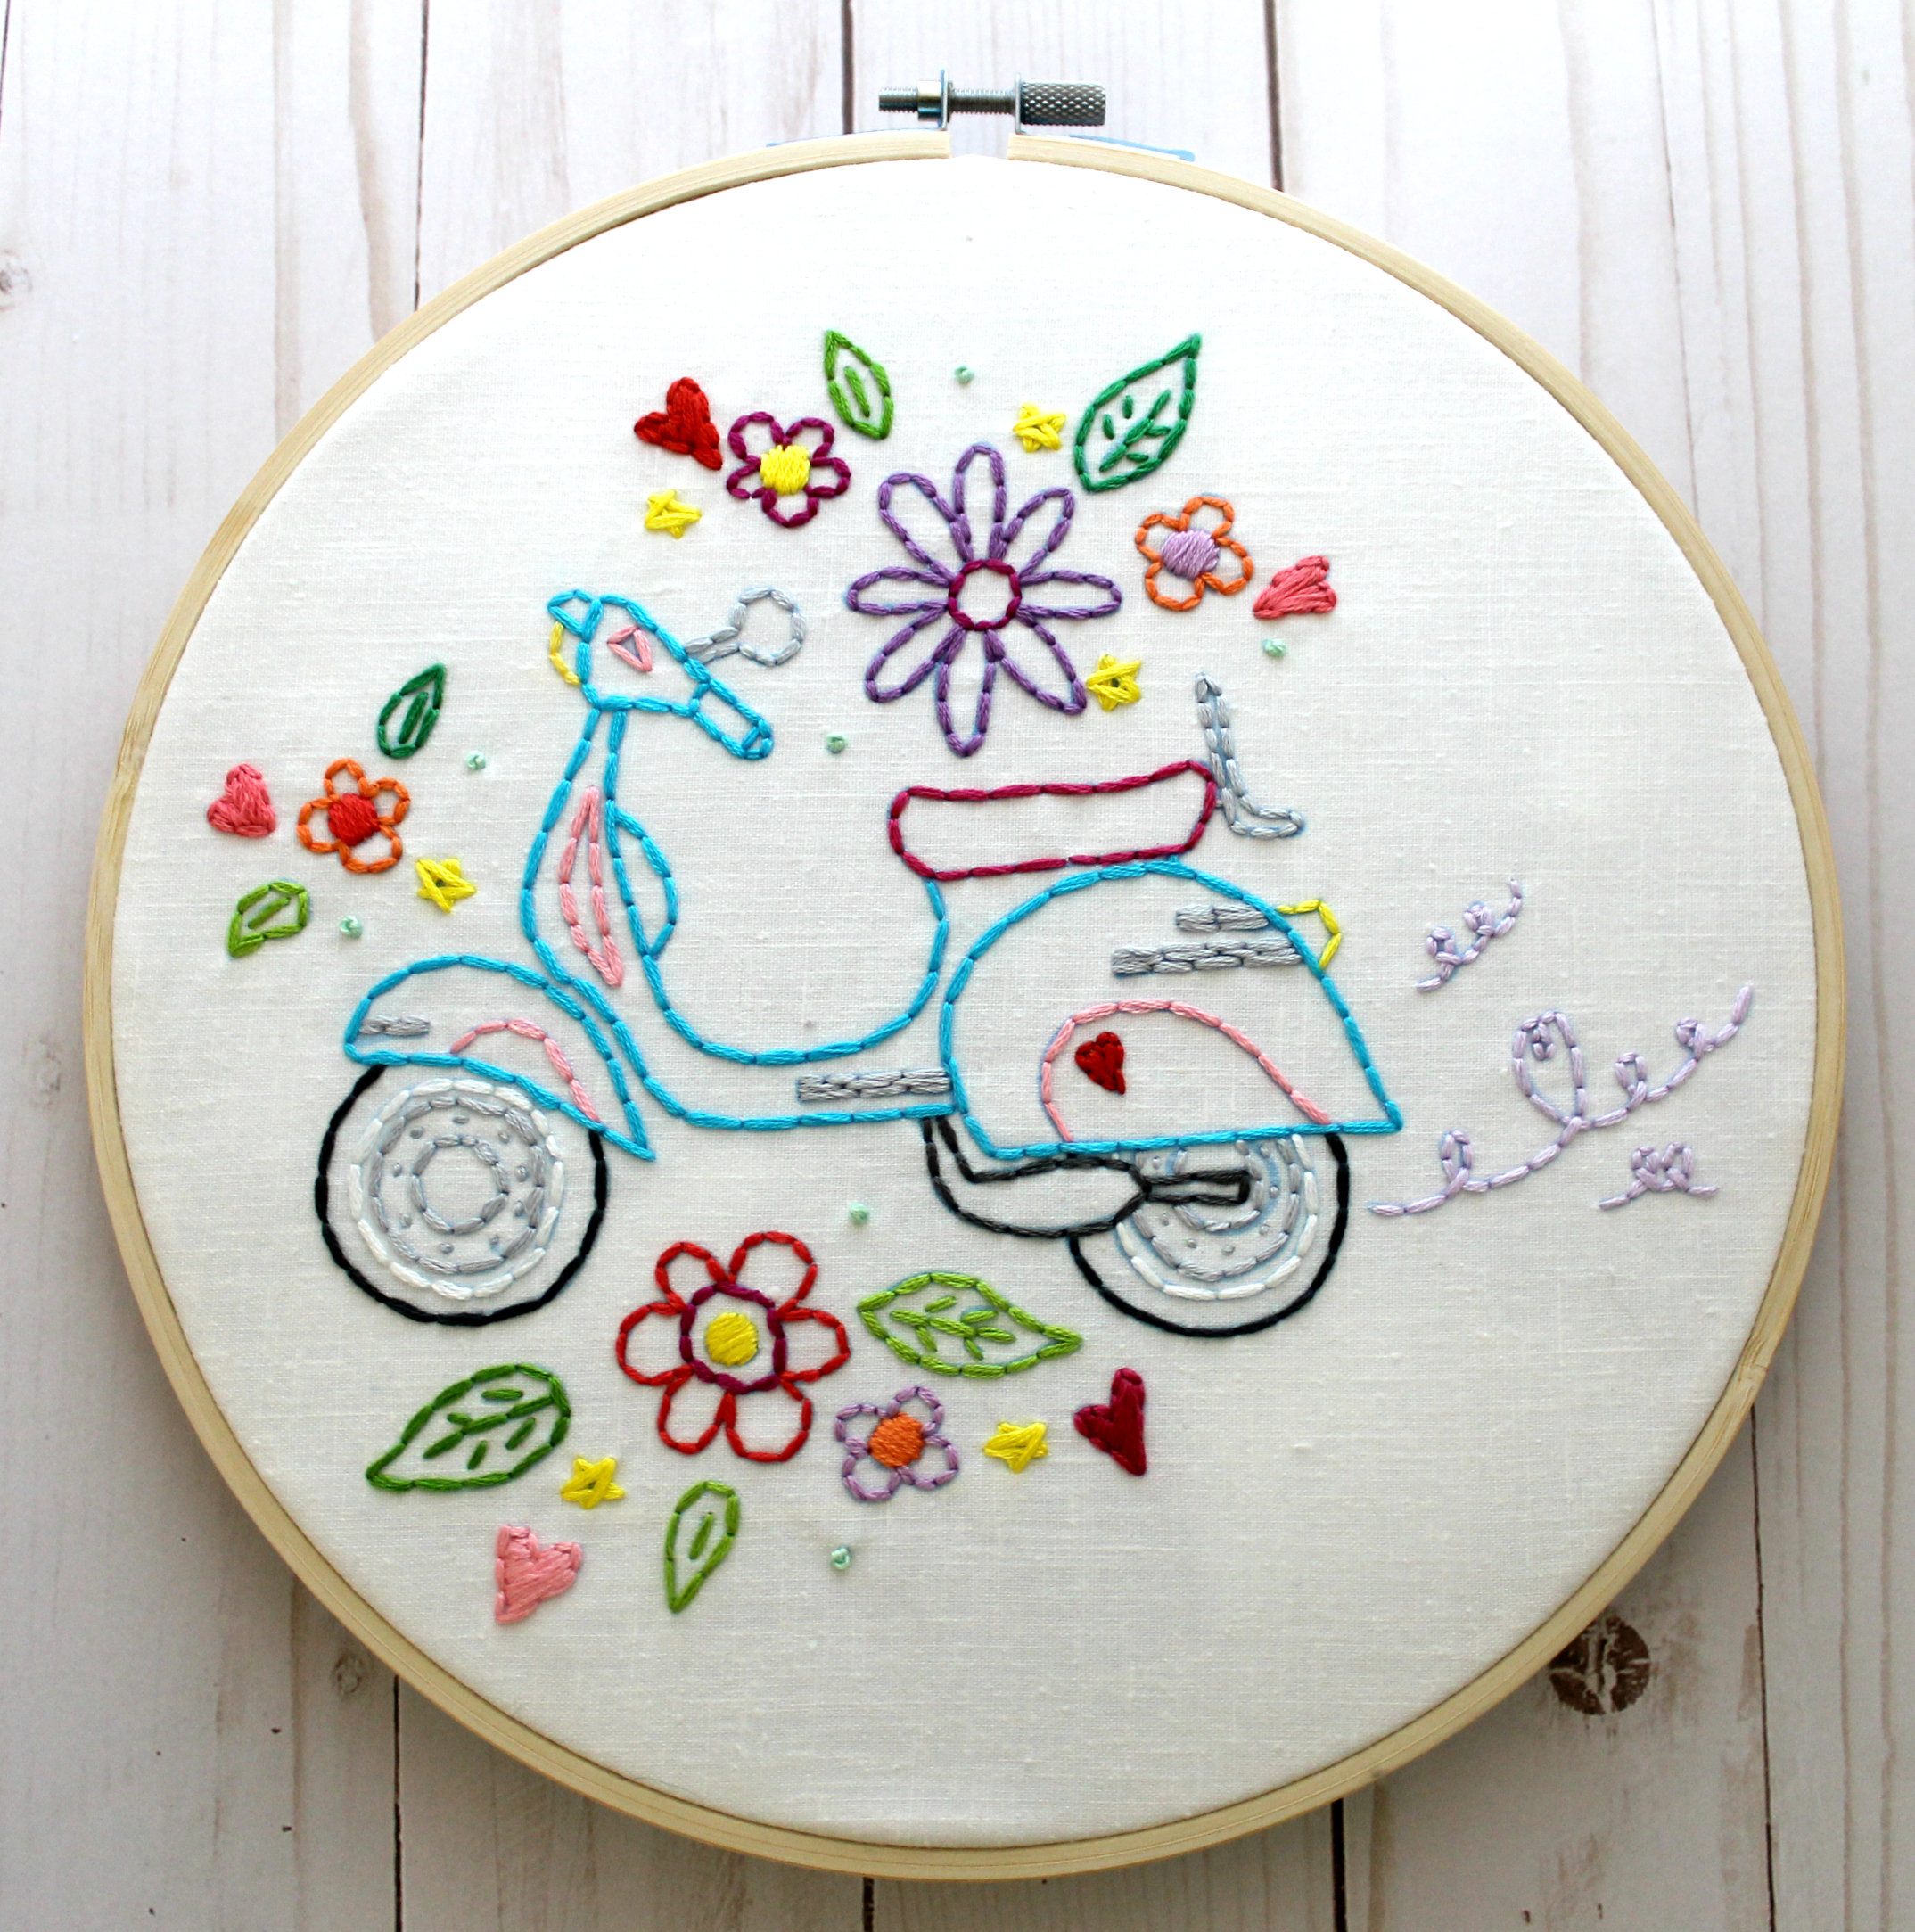 How To Design Embroidery Patterns By Hand Retro Scooter Hand Embroidery Pattern Embroidery Designs Embroidery Transfer Digital Pattern Summer Vespa Scooter Vintage Scooter